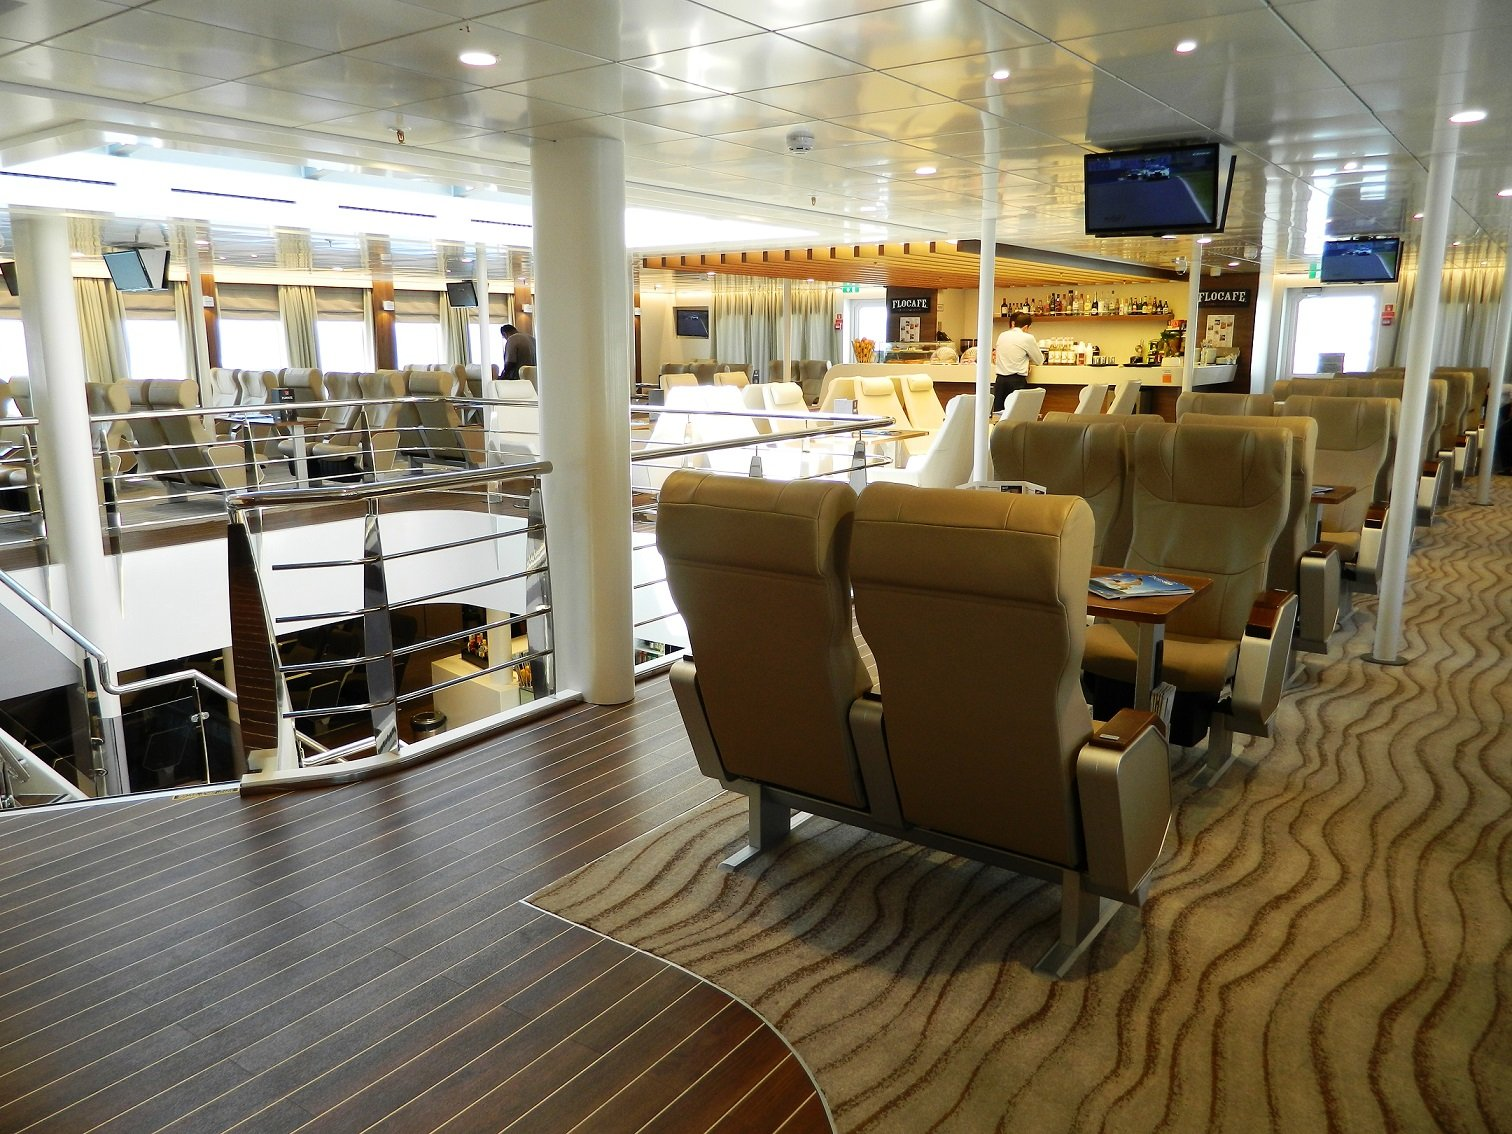 Highspeed 7 Vip Lounge in Bridge Deck